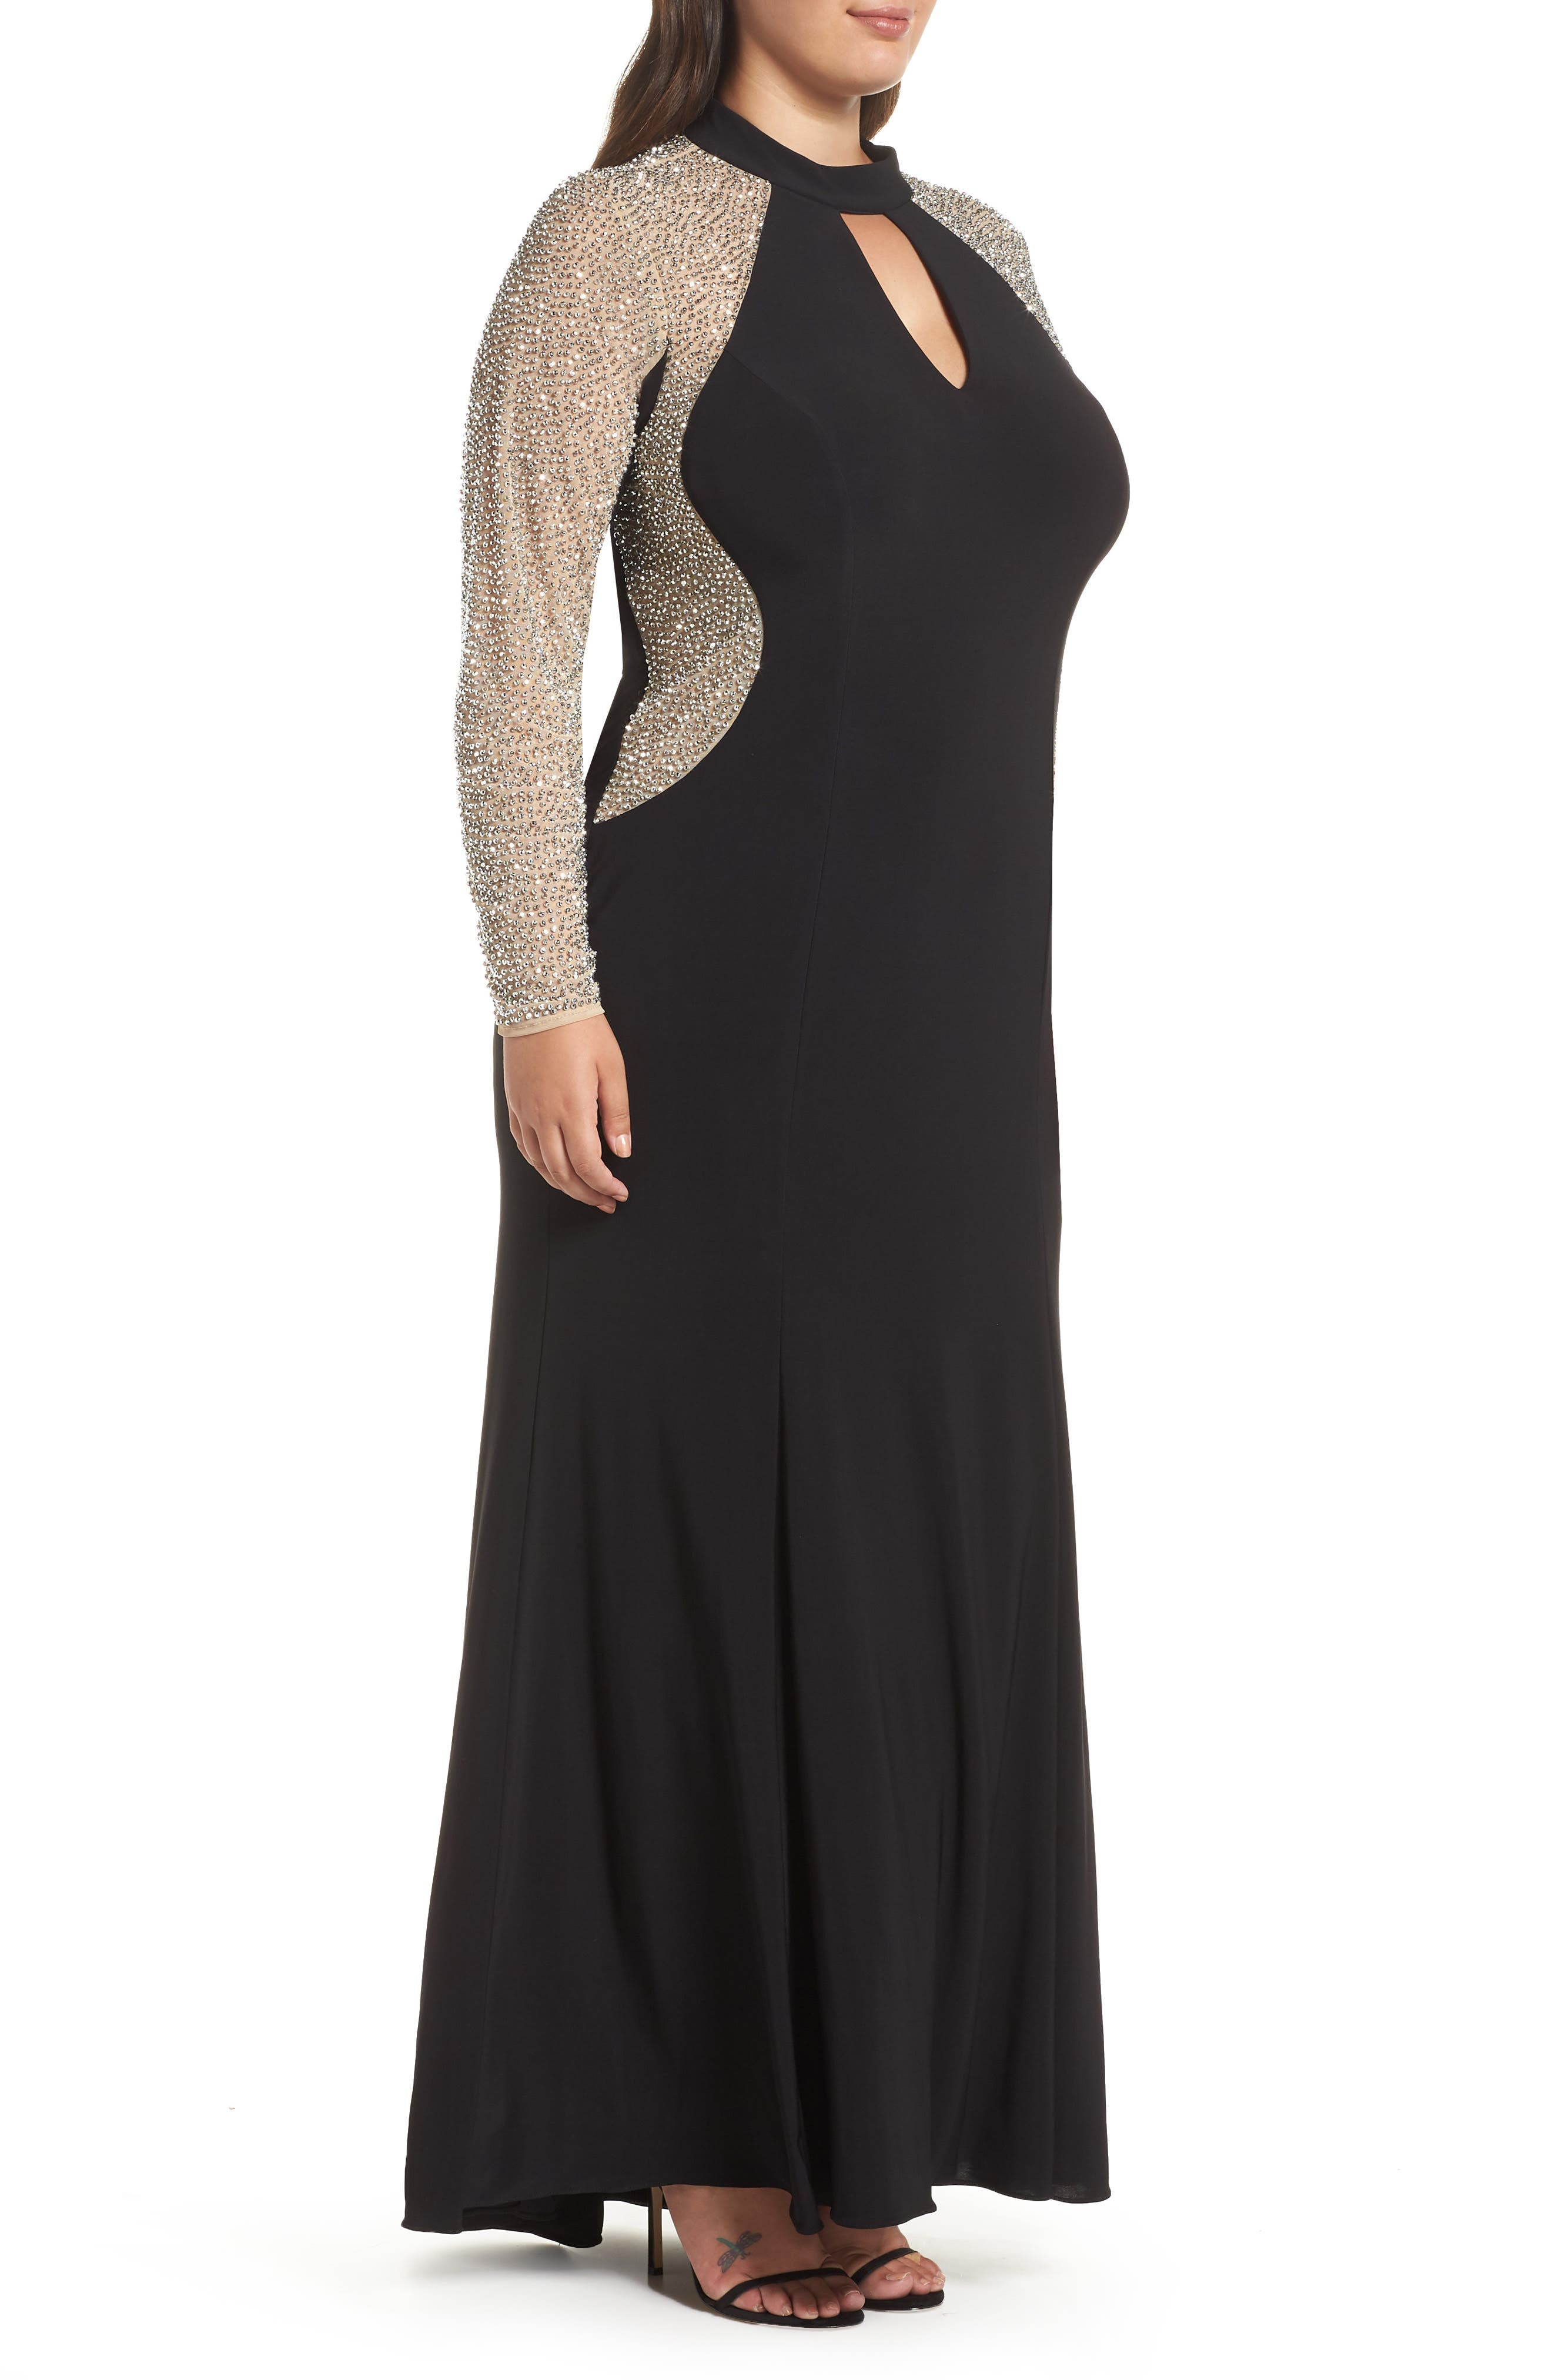 XSCAPE, Beaded A-Line Gown, Alternate thumbnail 4, color, BLACK/ NUDE/ SILVER